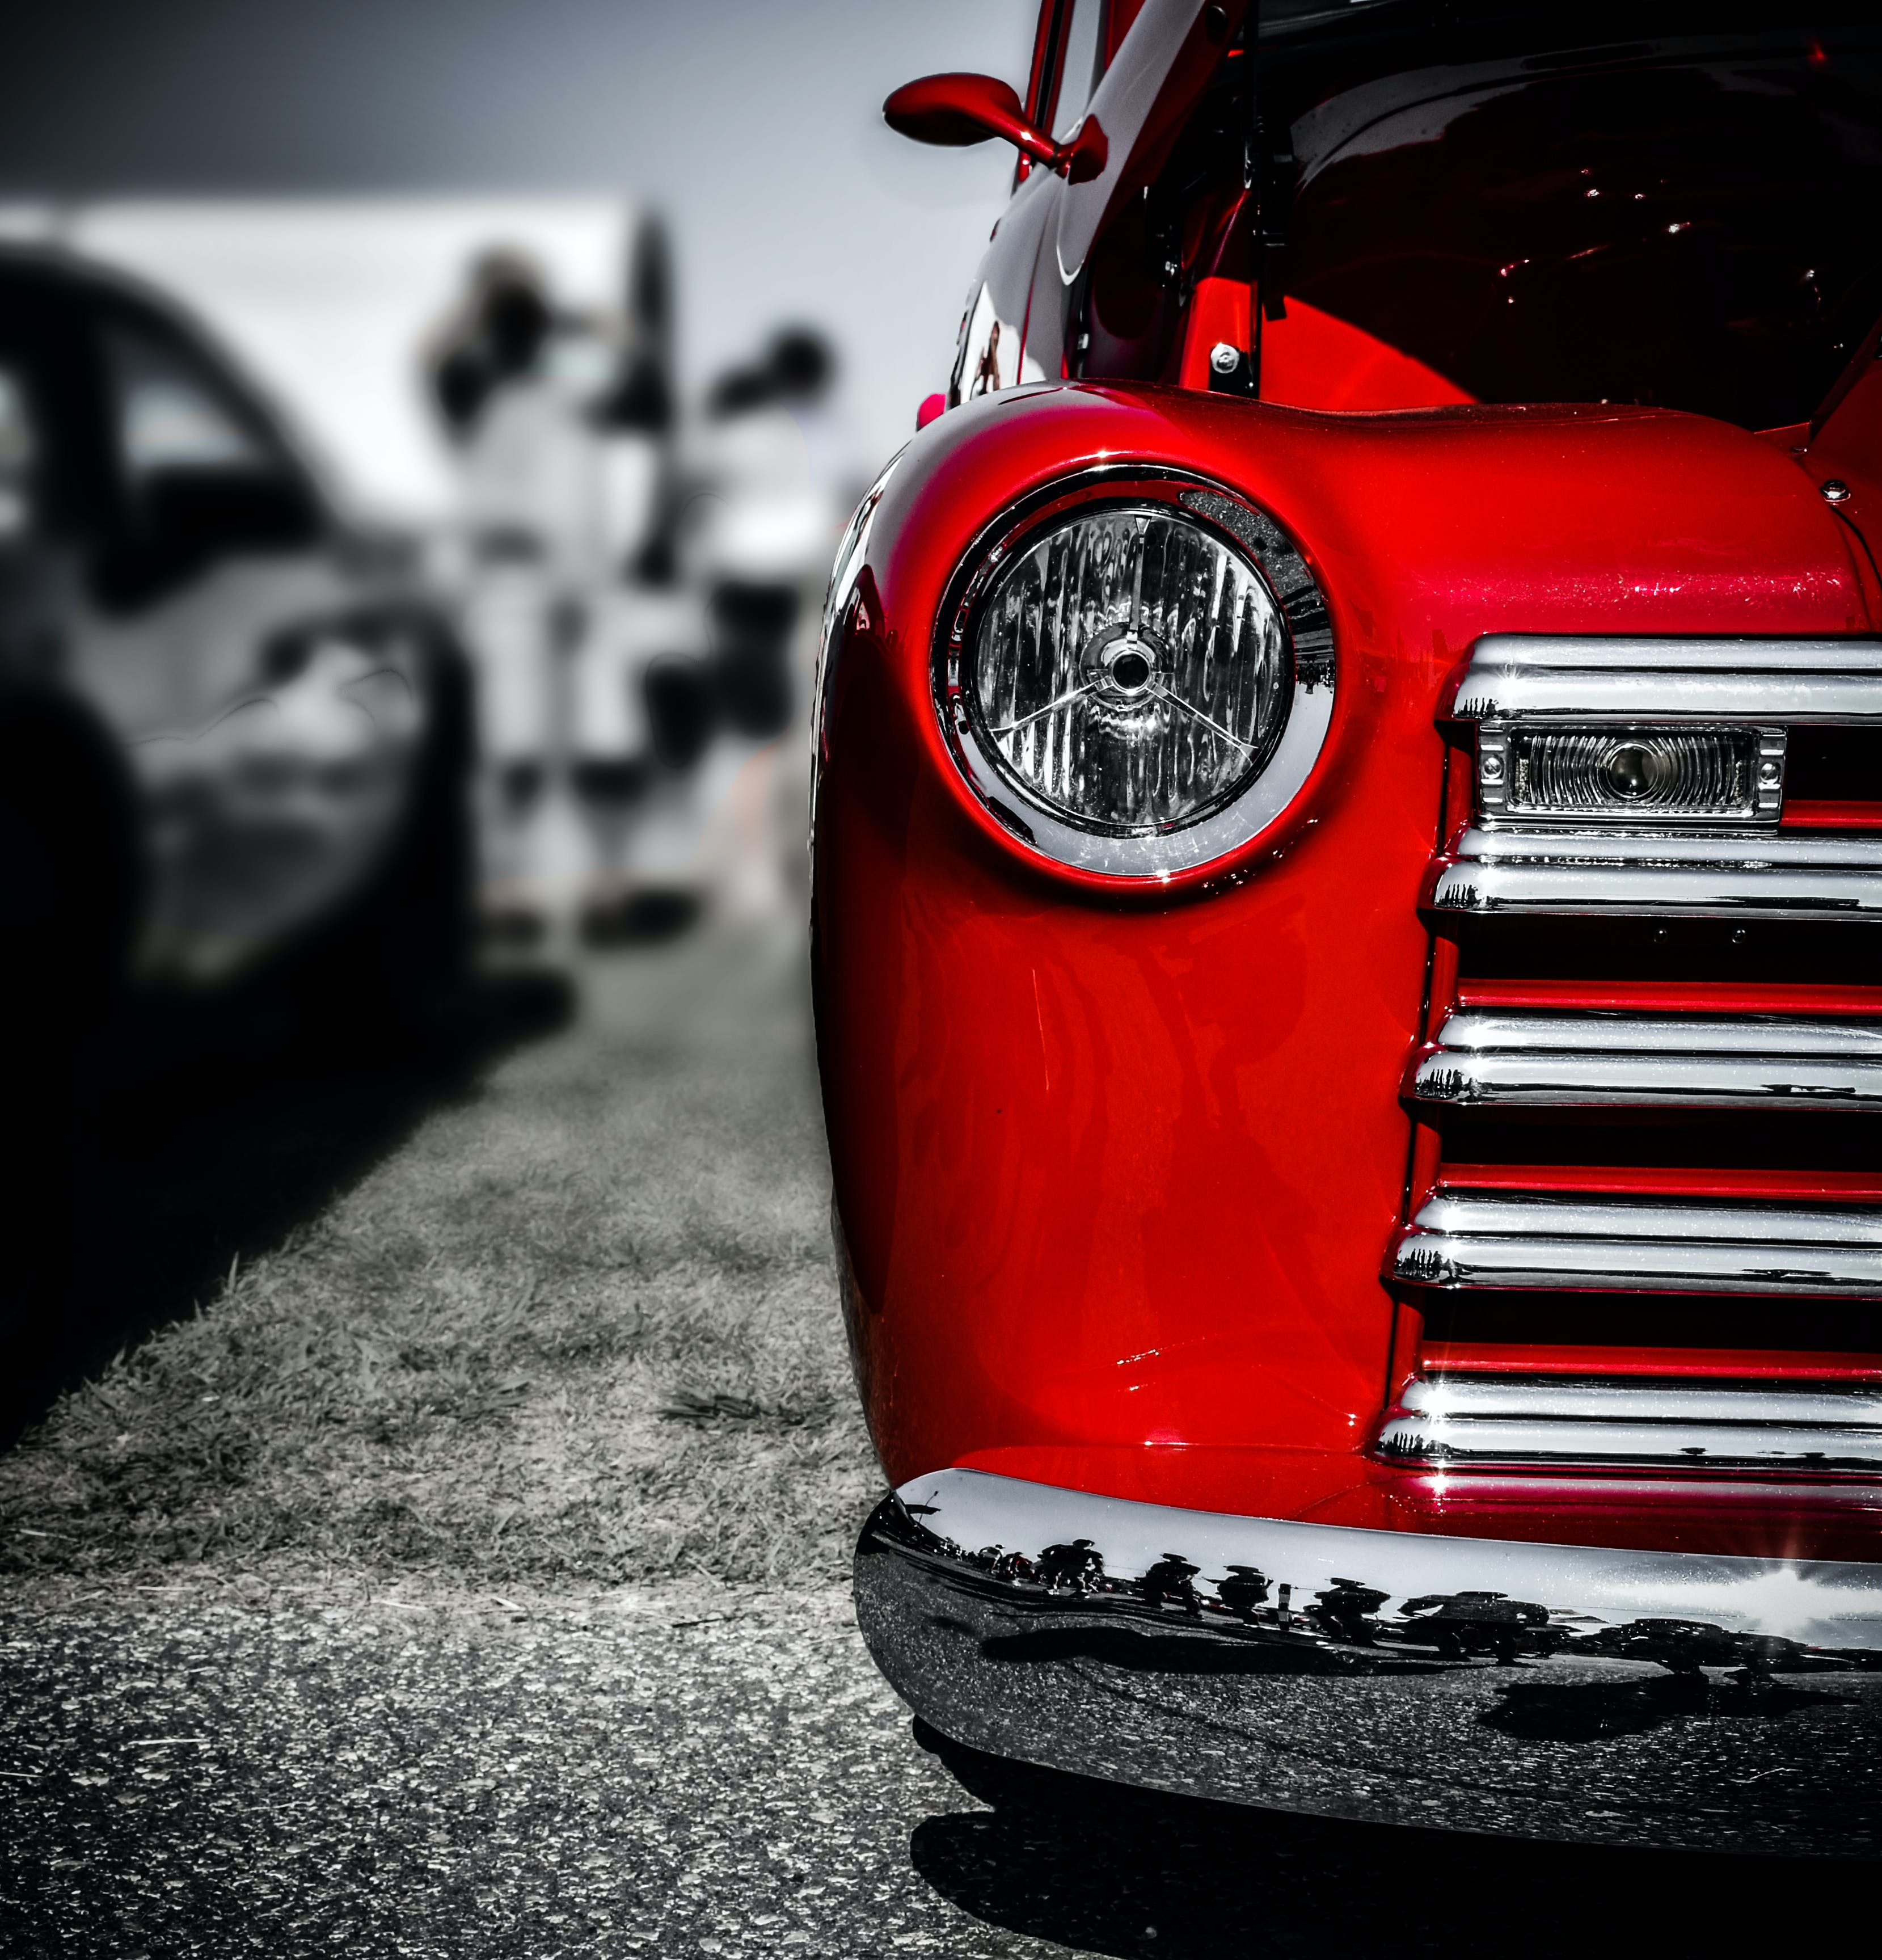 Free stock photo of car, chrome, phone wallpaper, red car